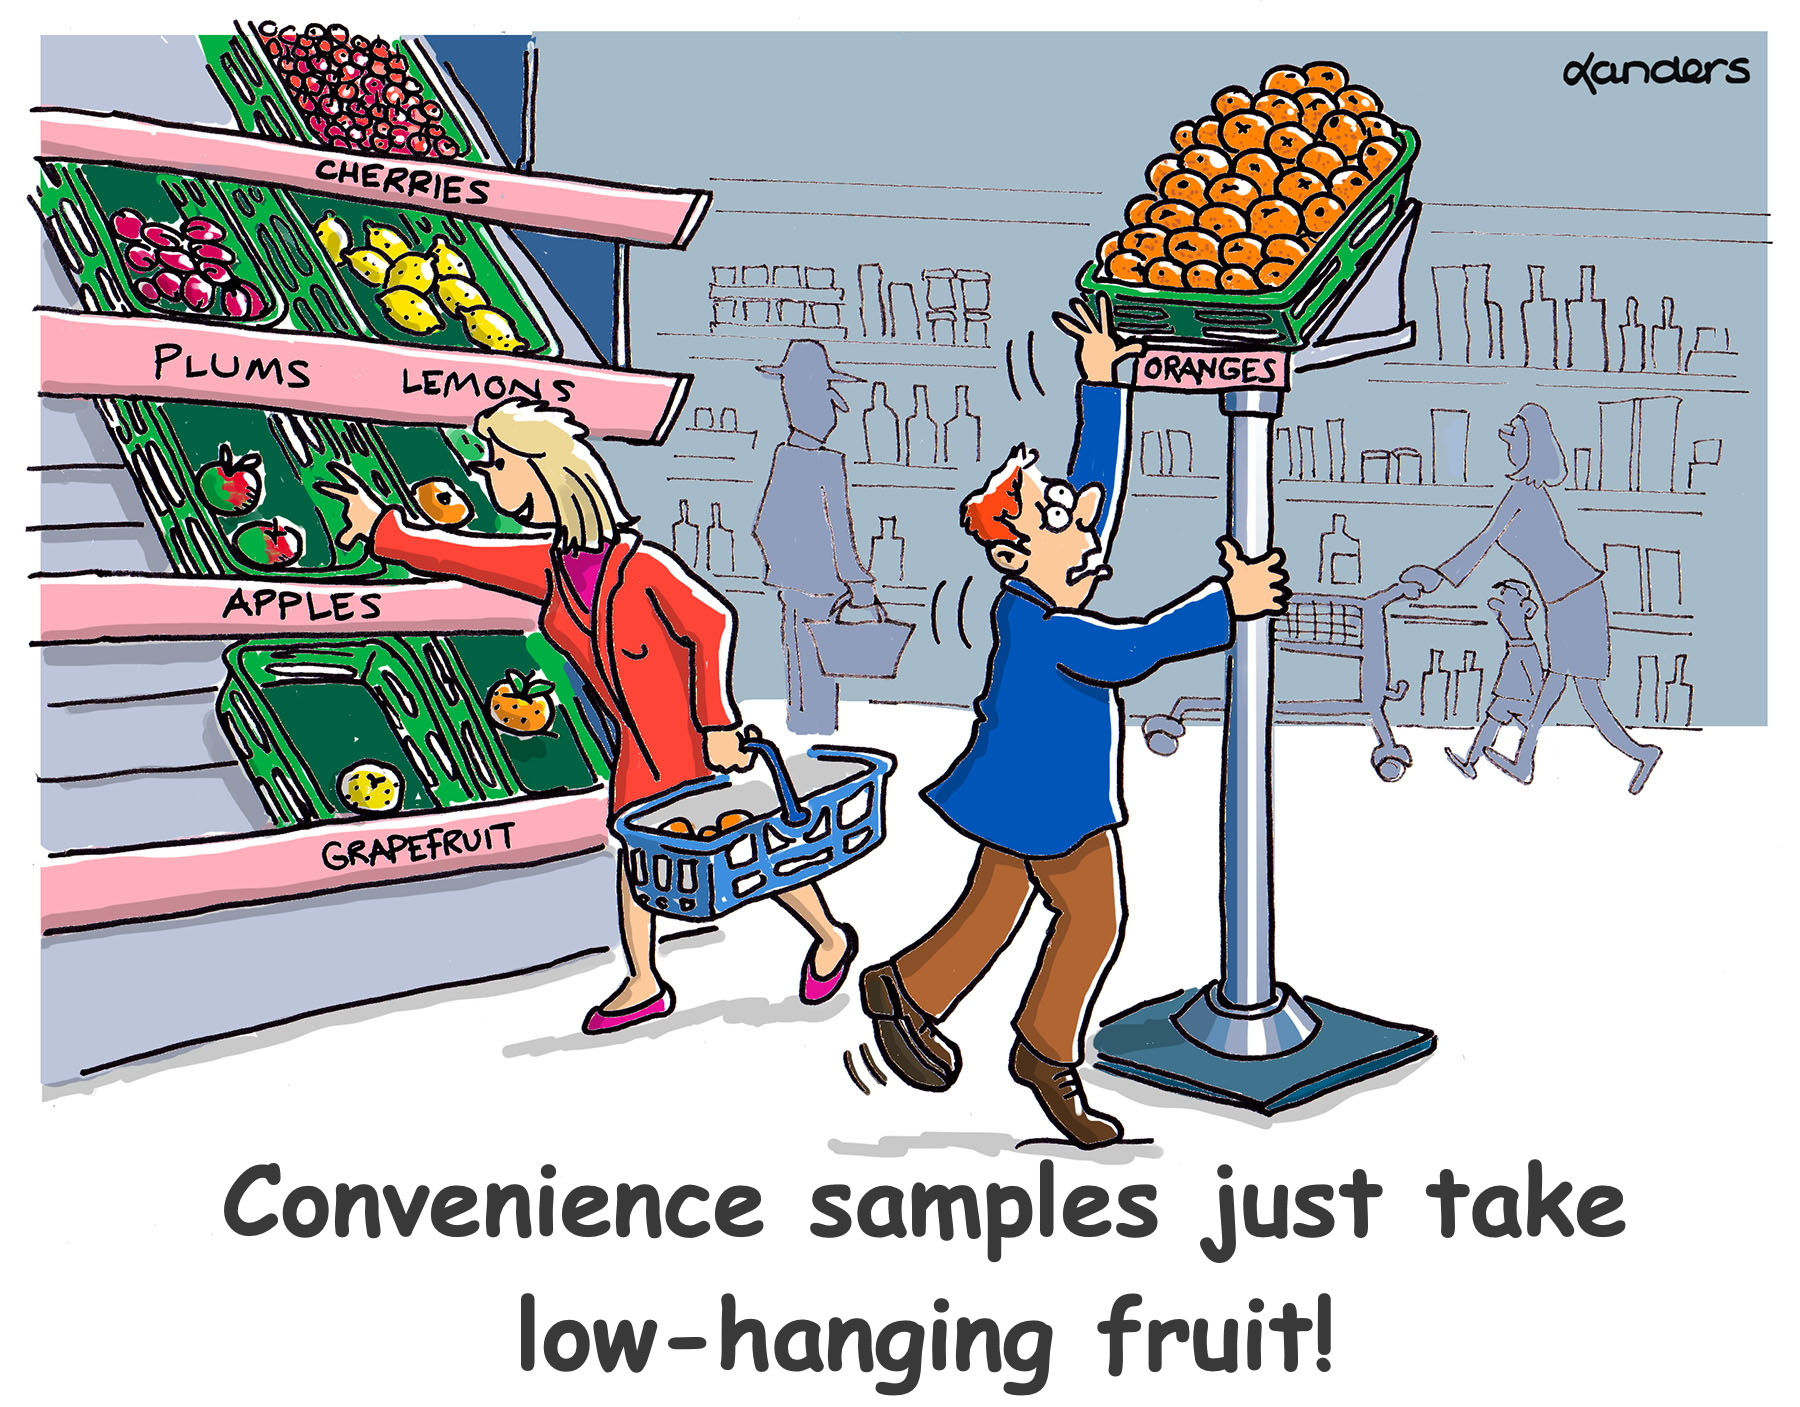 a cartoon showing fruit area of a grocery store with some fruit very hard to reach